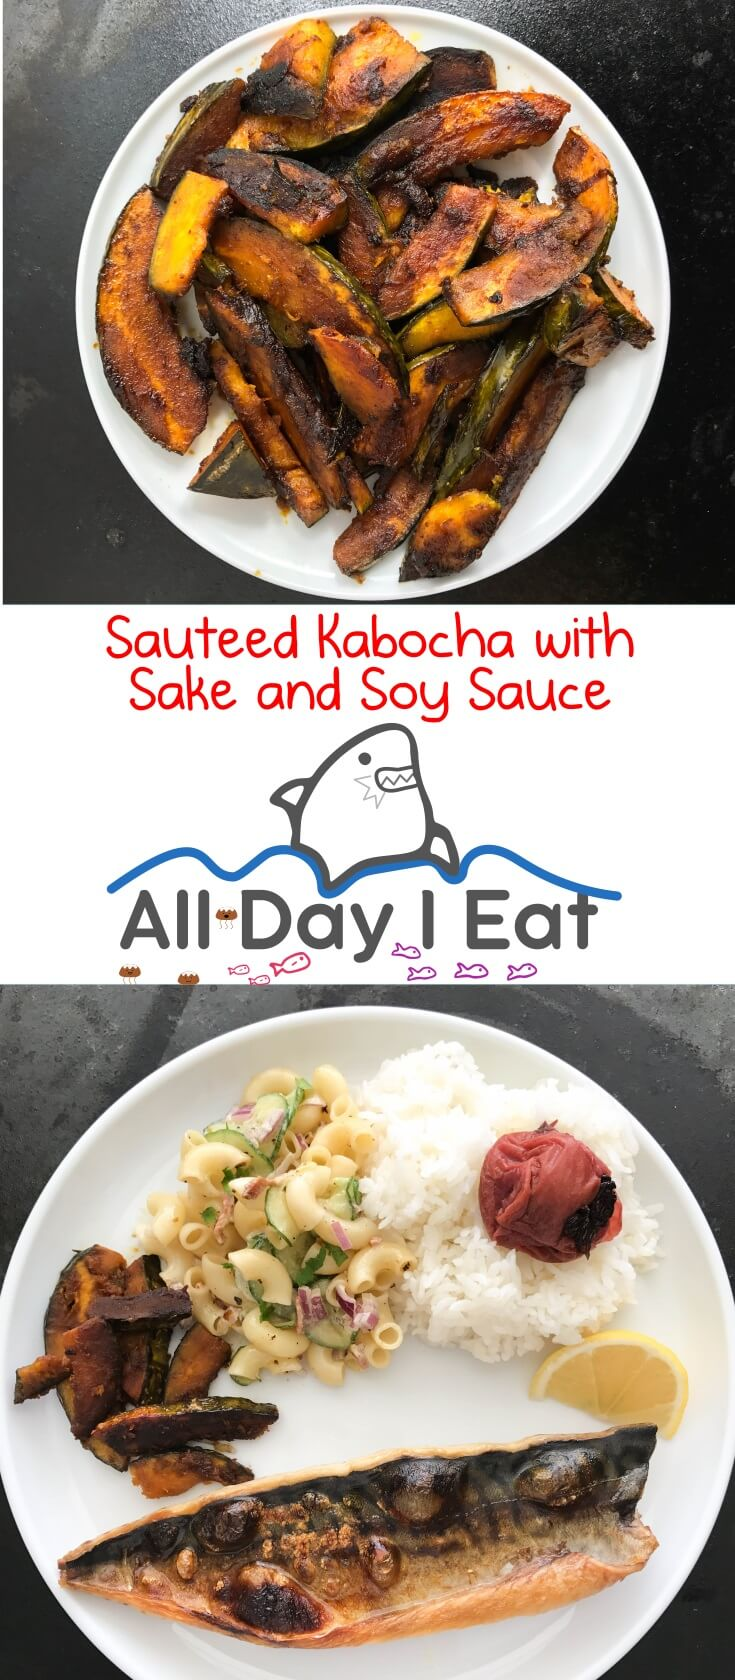 Sauteed Kabocha with Sake and Soy Sauce. Japanese pumpkin that is easy to prepare and tastes delicious! | www.alldayieat.com